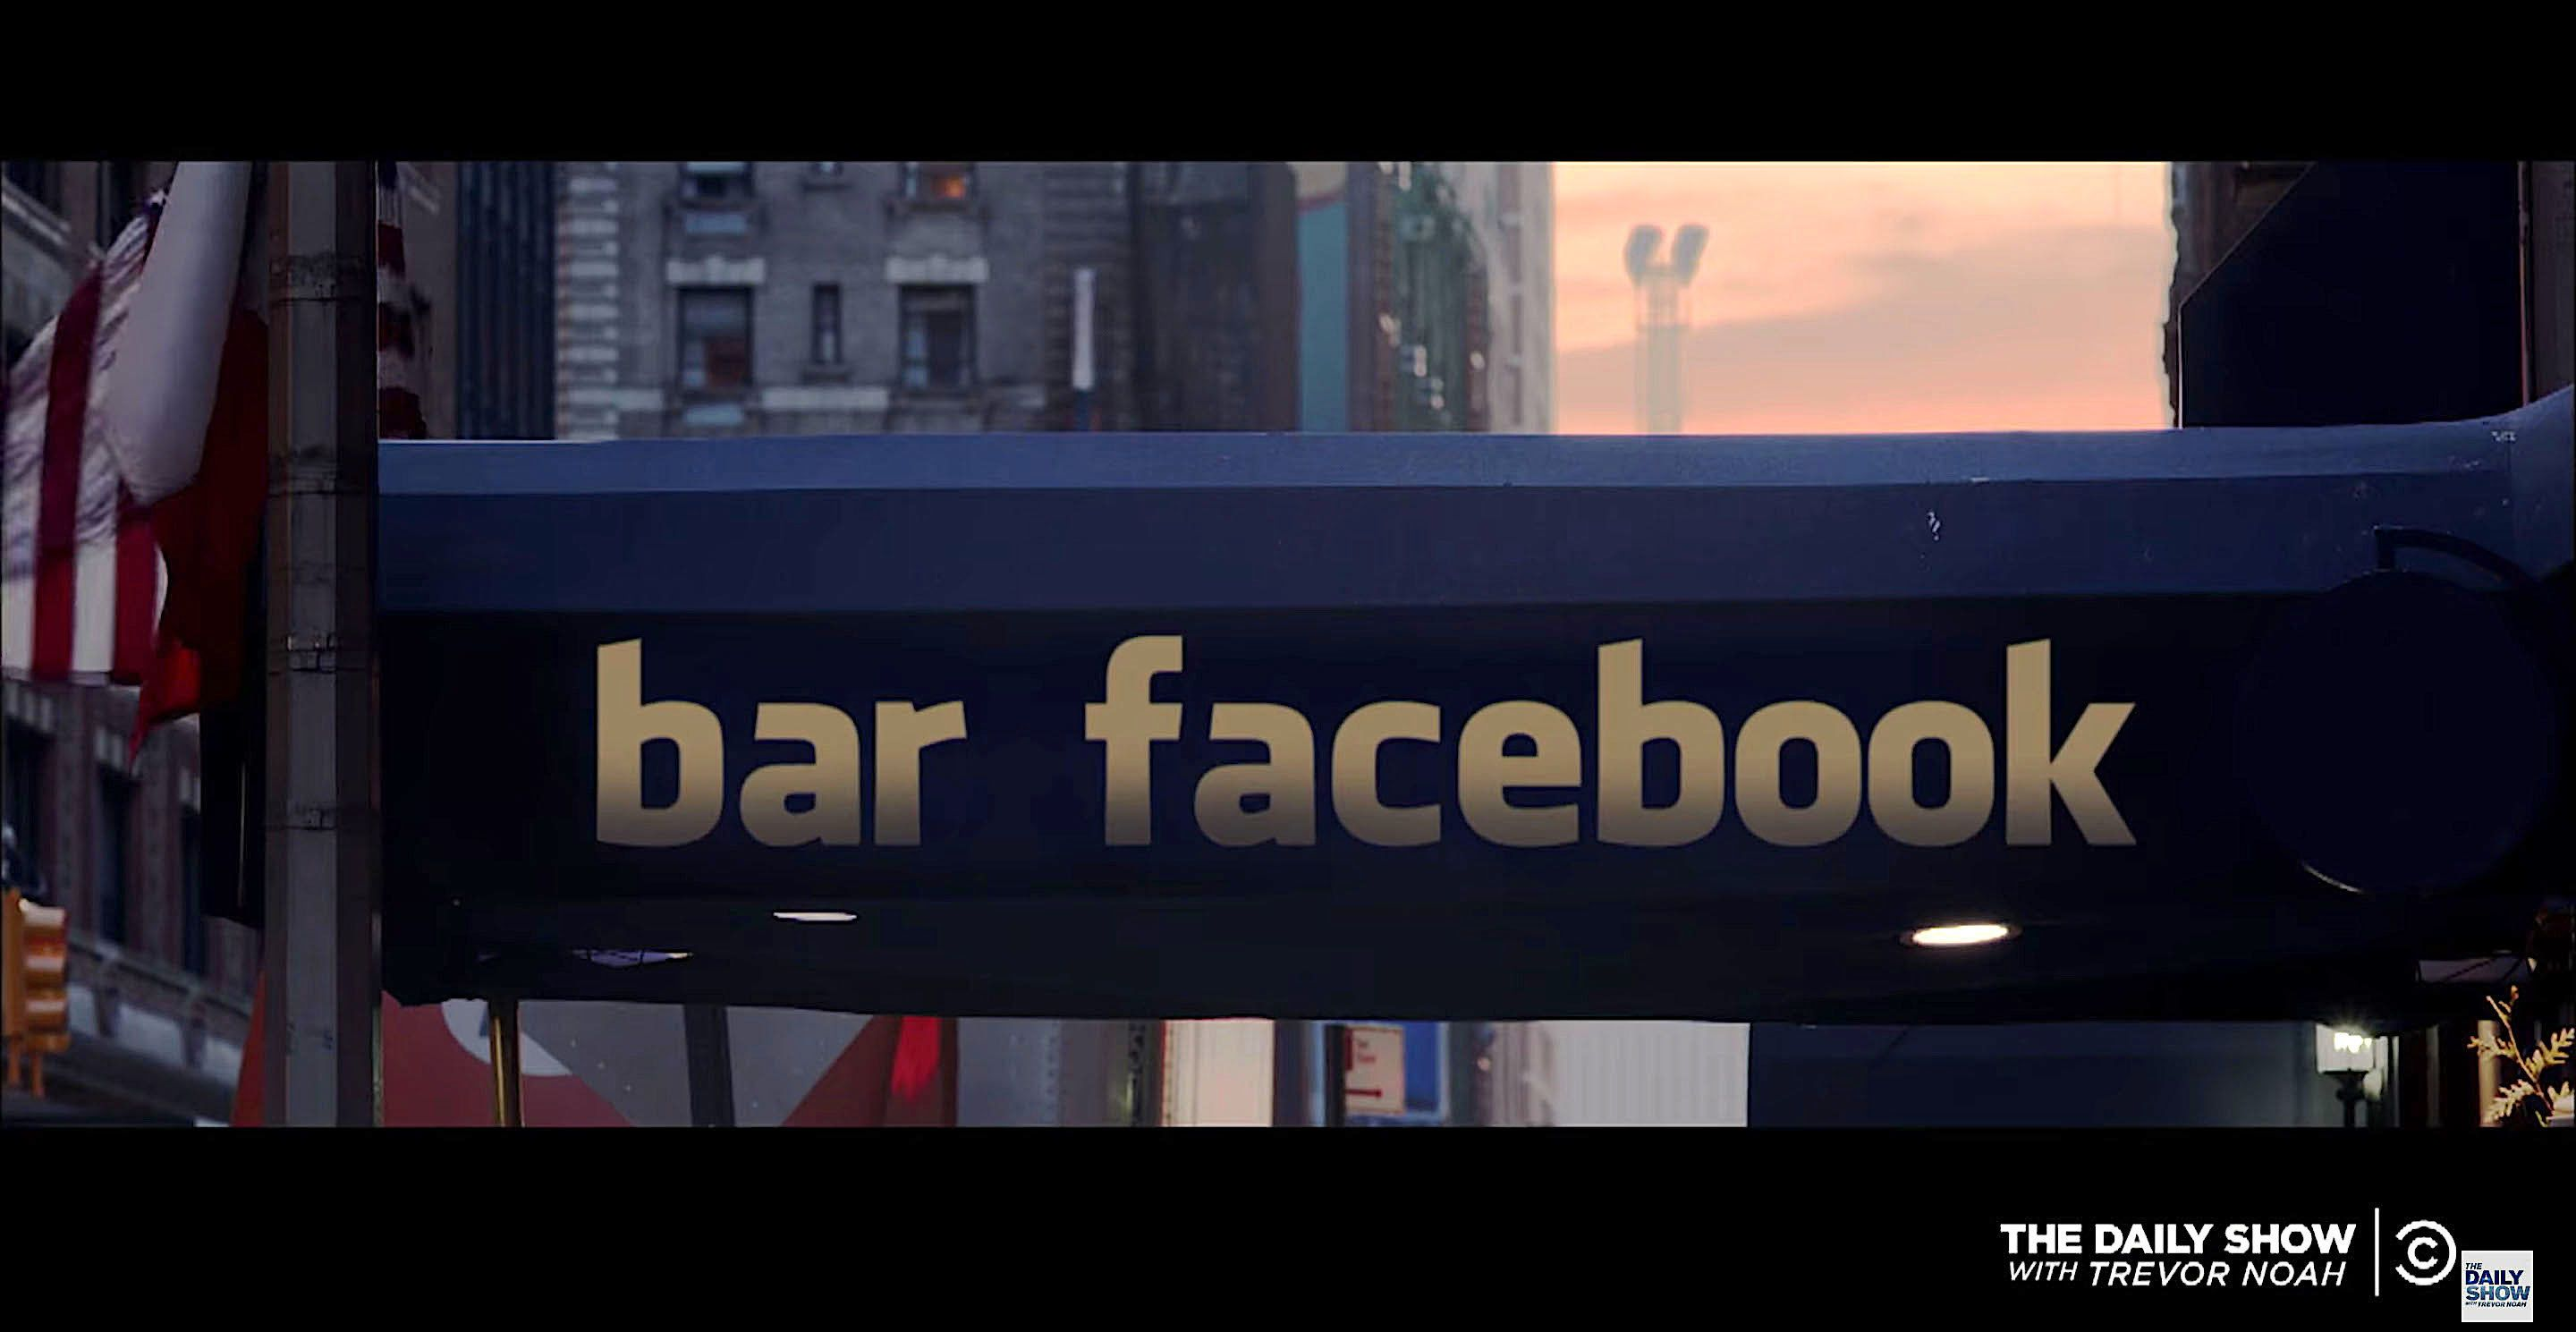 What if Facebook were a physical place